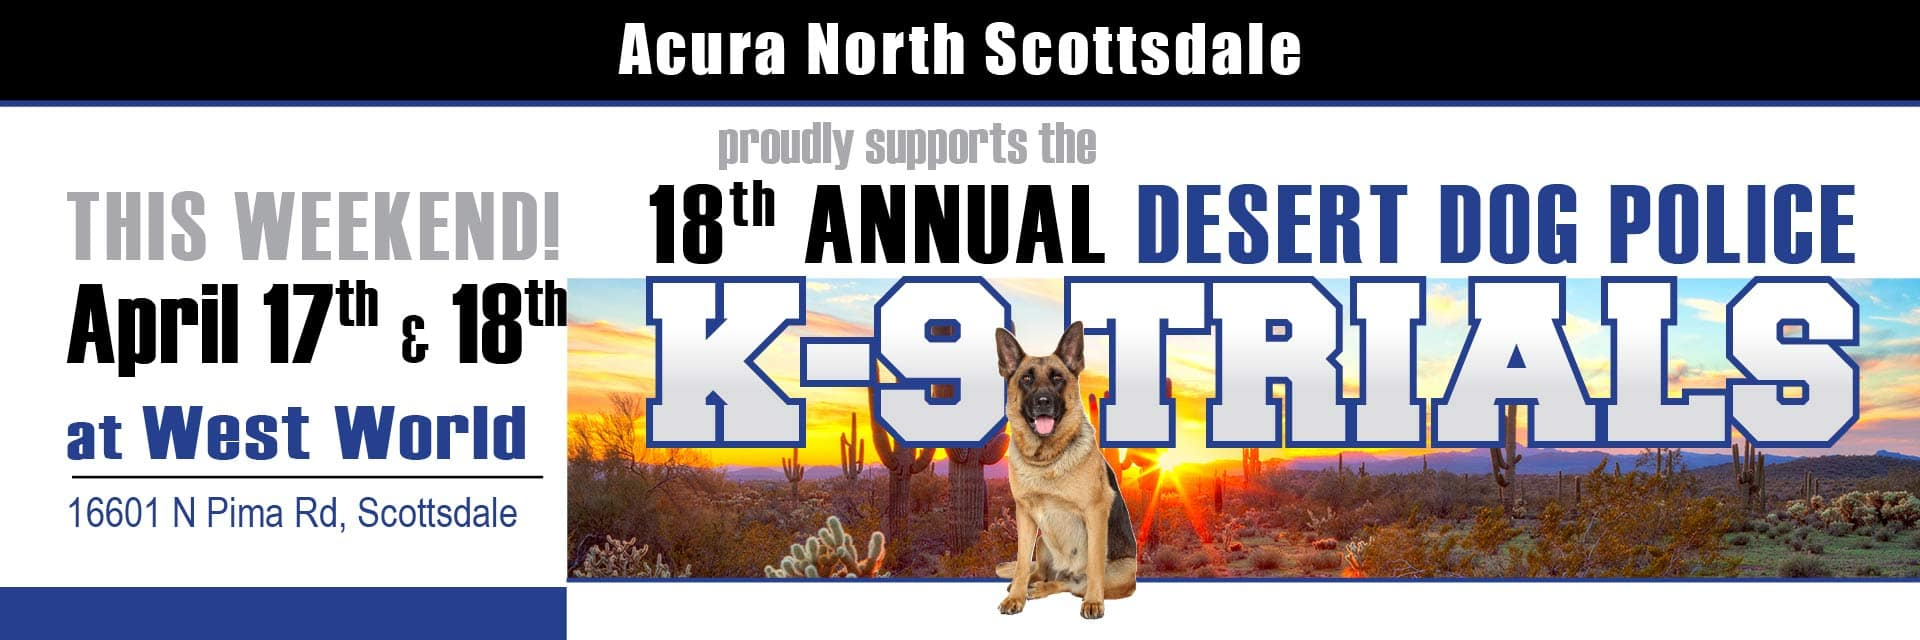 Acura North Scottsdale proudly supports K-9 Trials